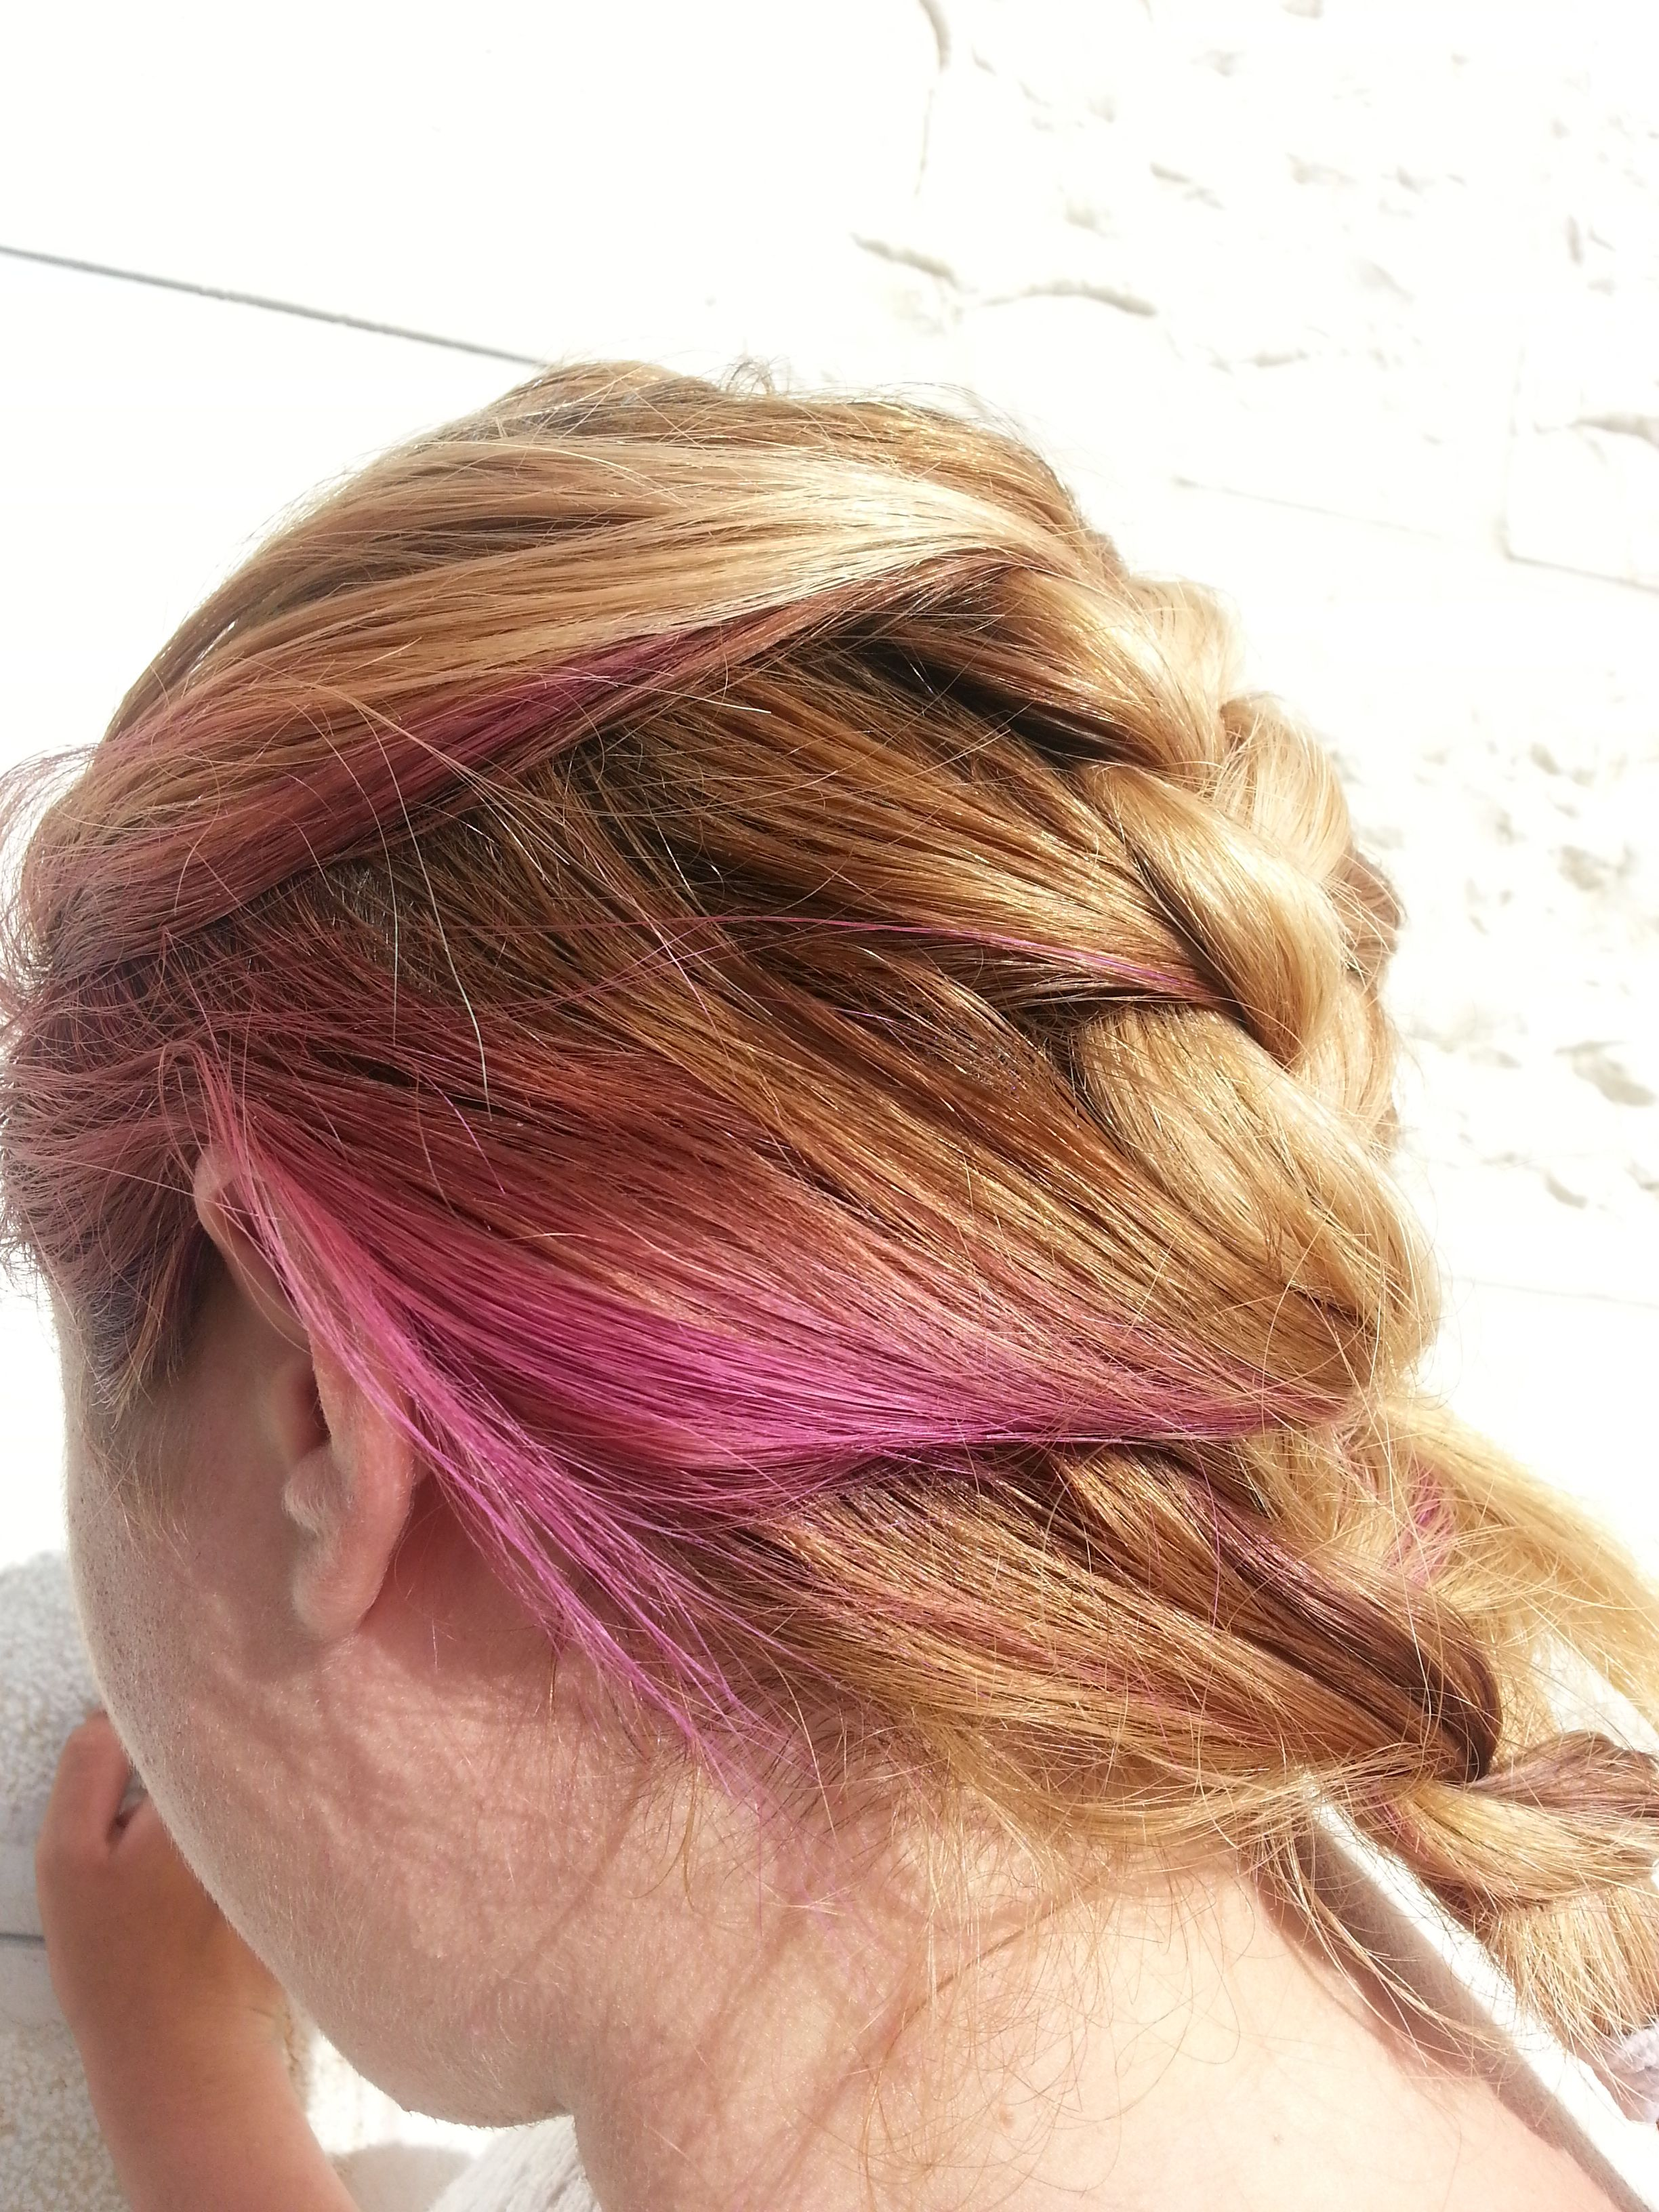 #pink #blonde #braid #hair